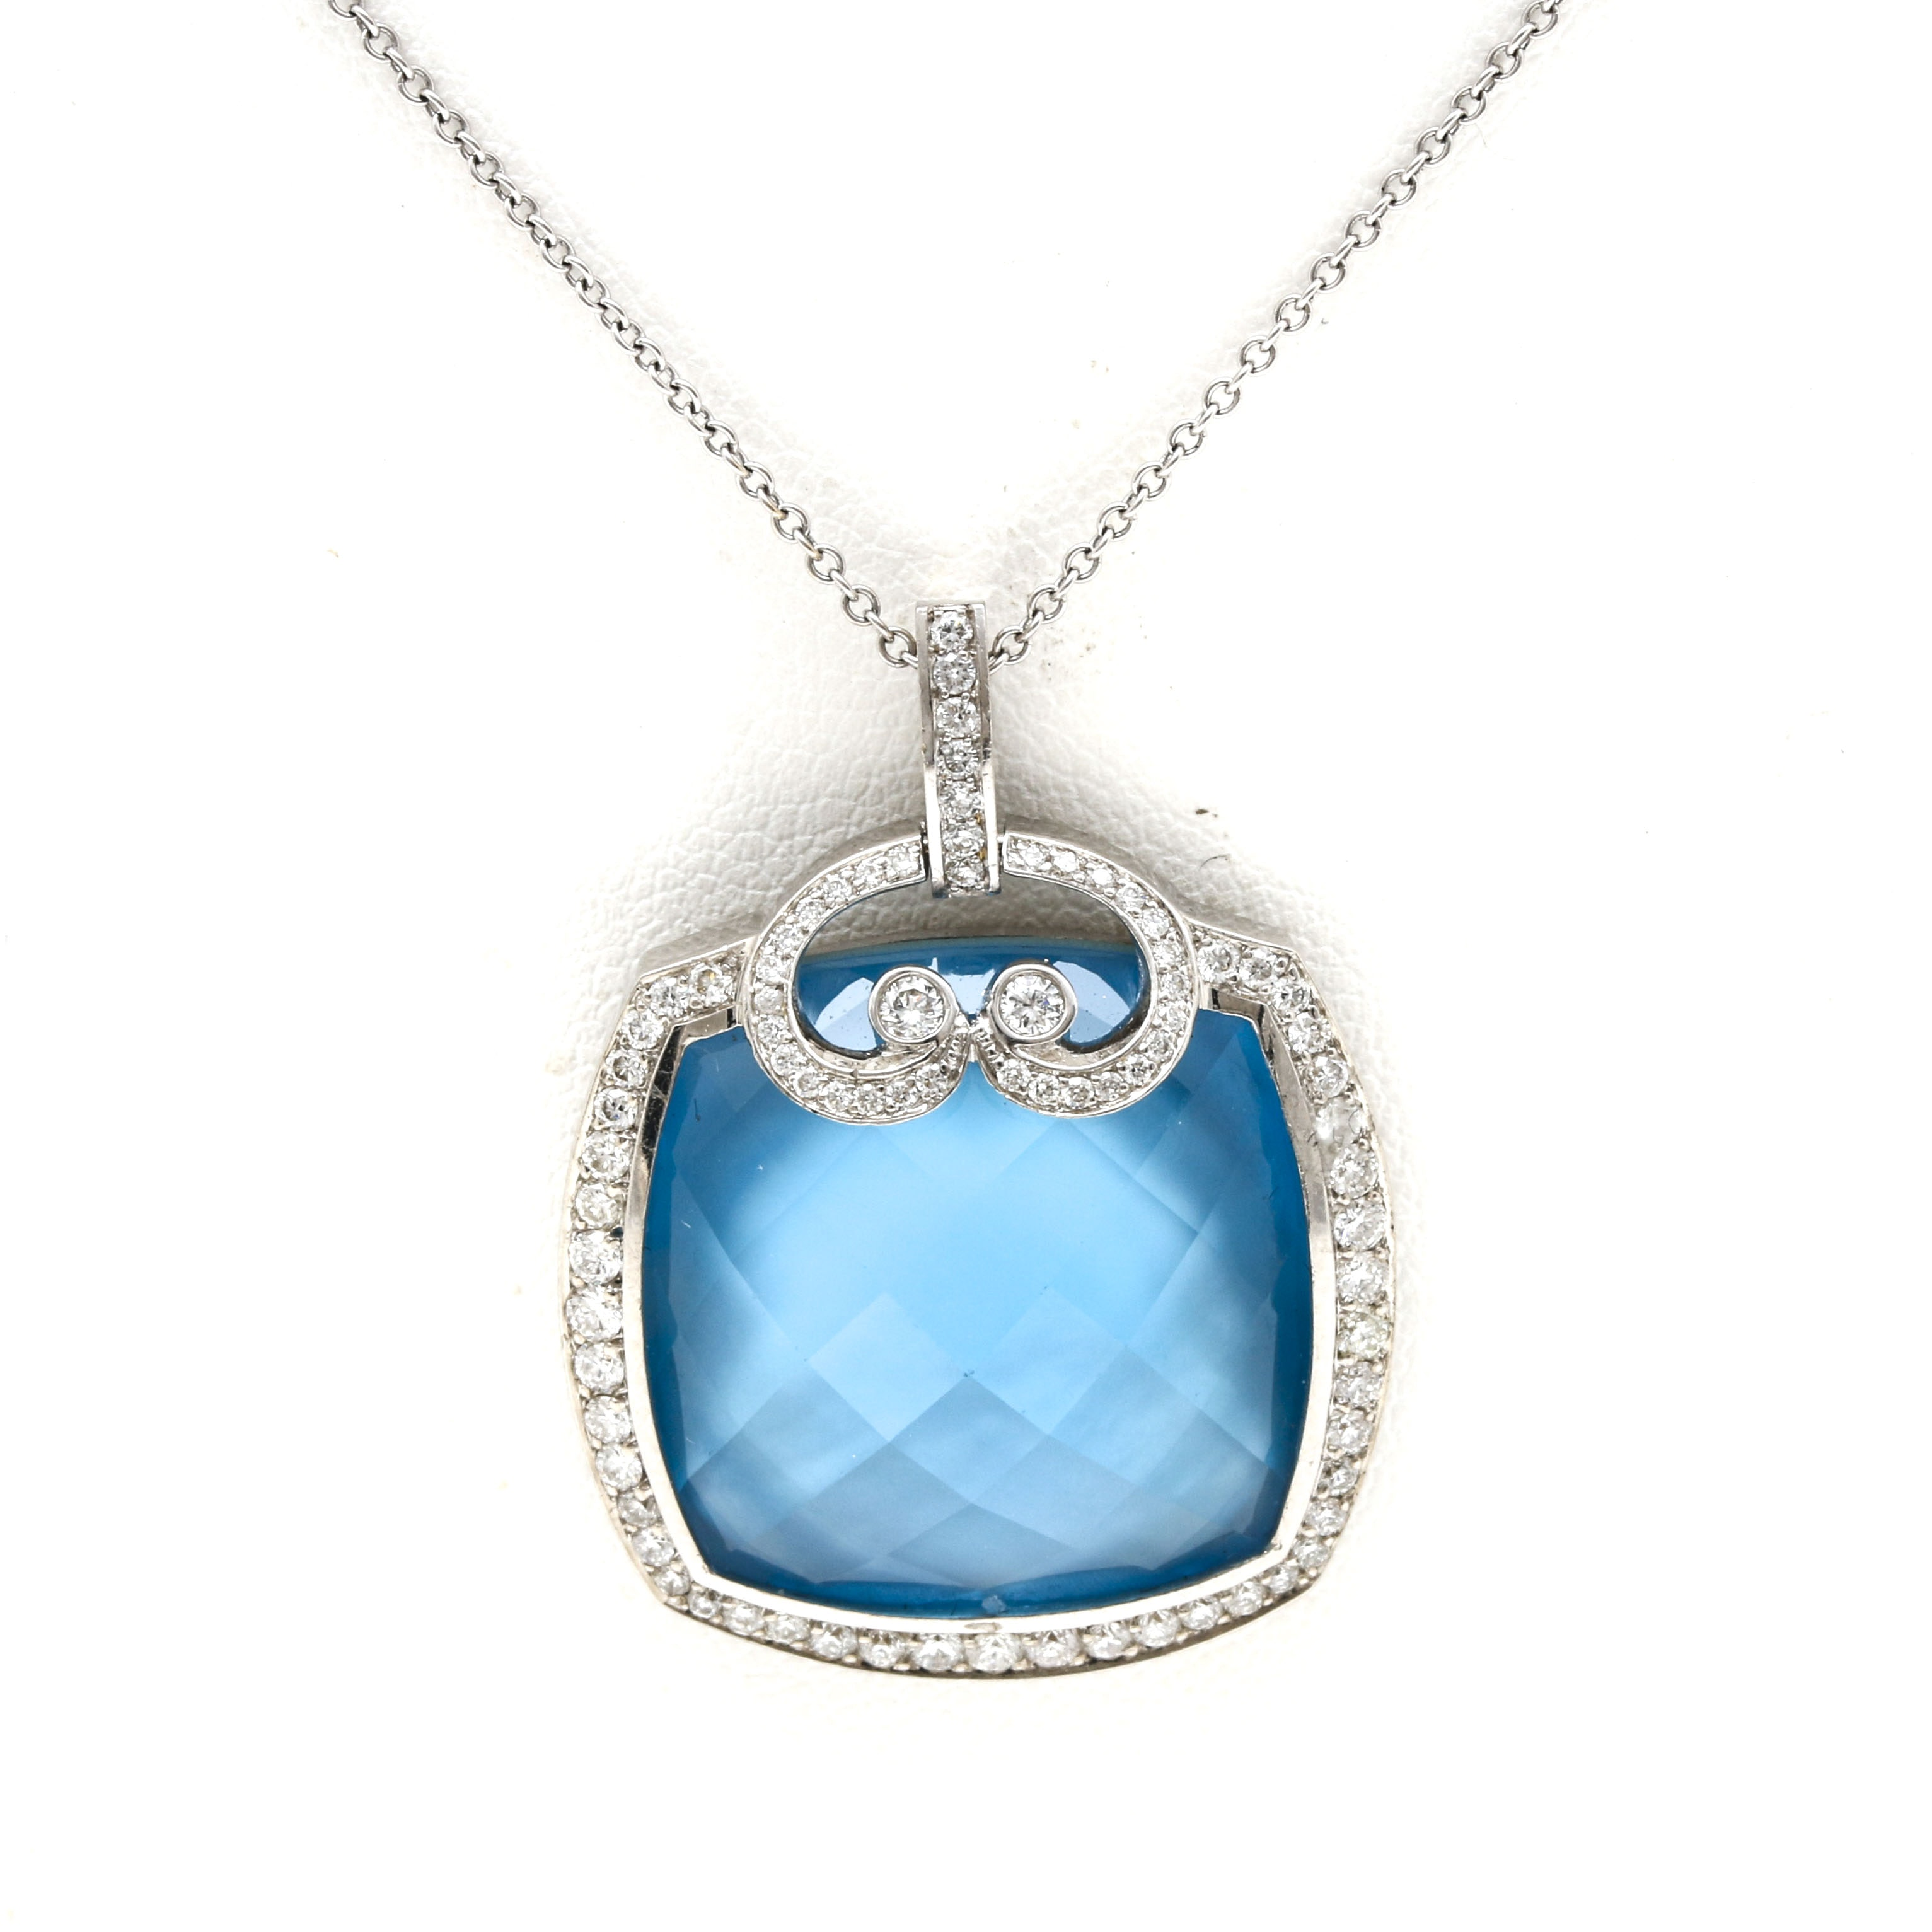 14K and 18K White Gold Blue Topaz Over Mother of Pearl and Diamond Necklace